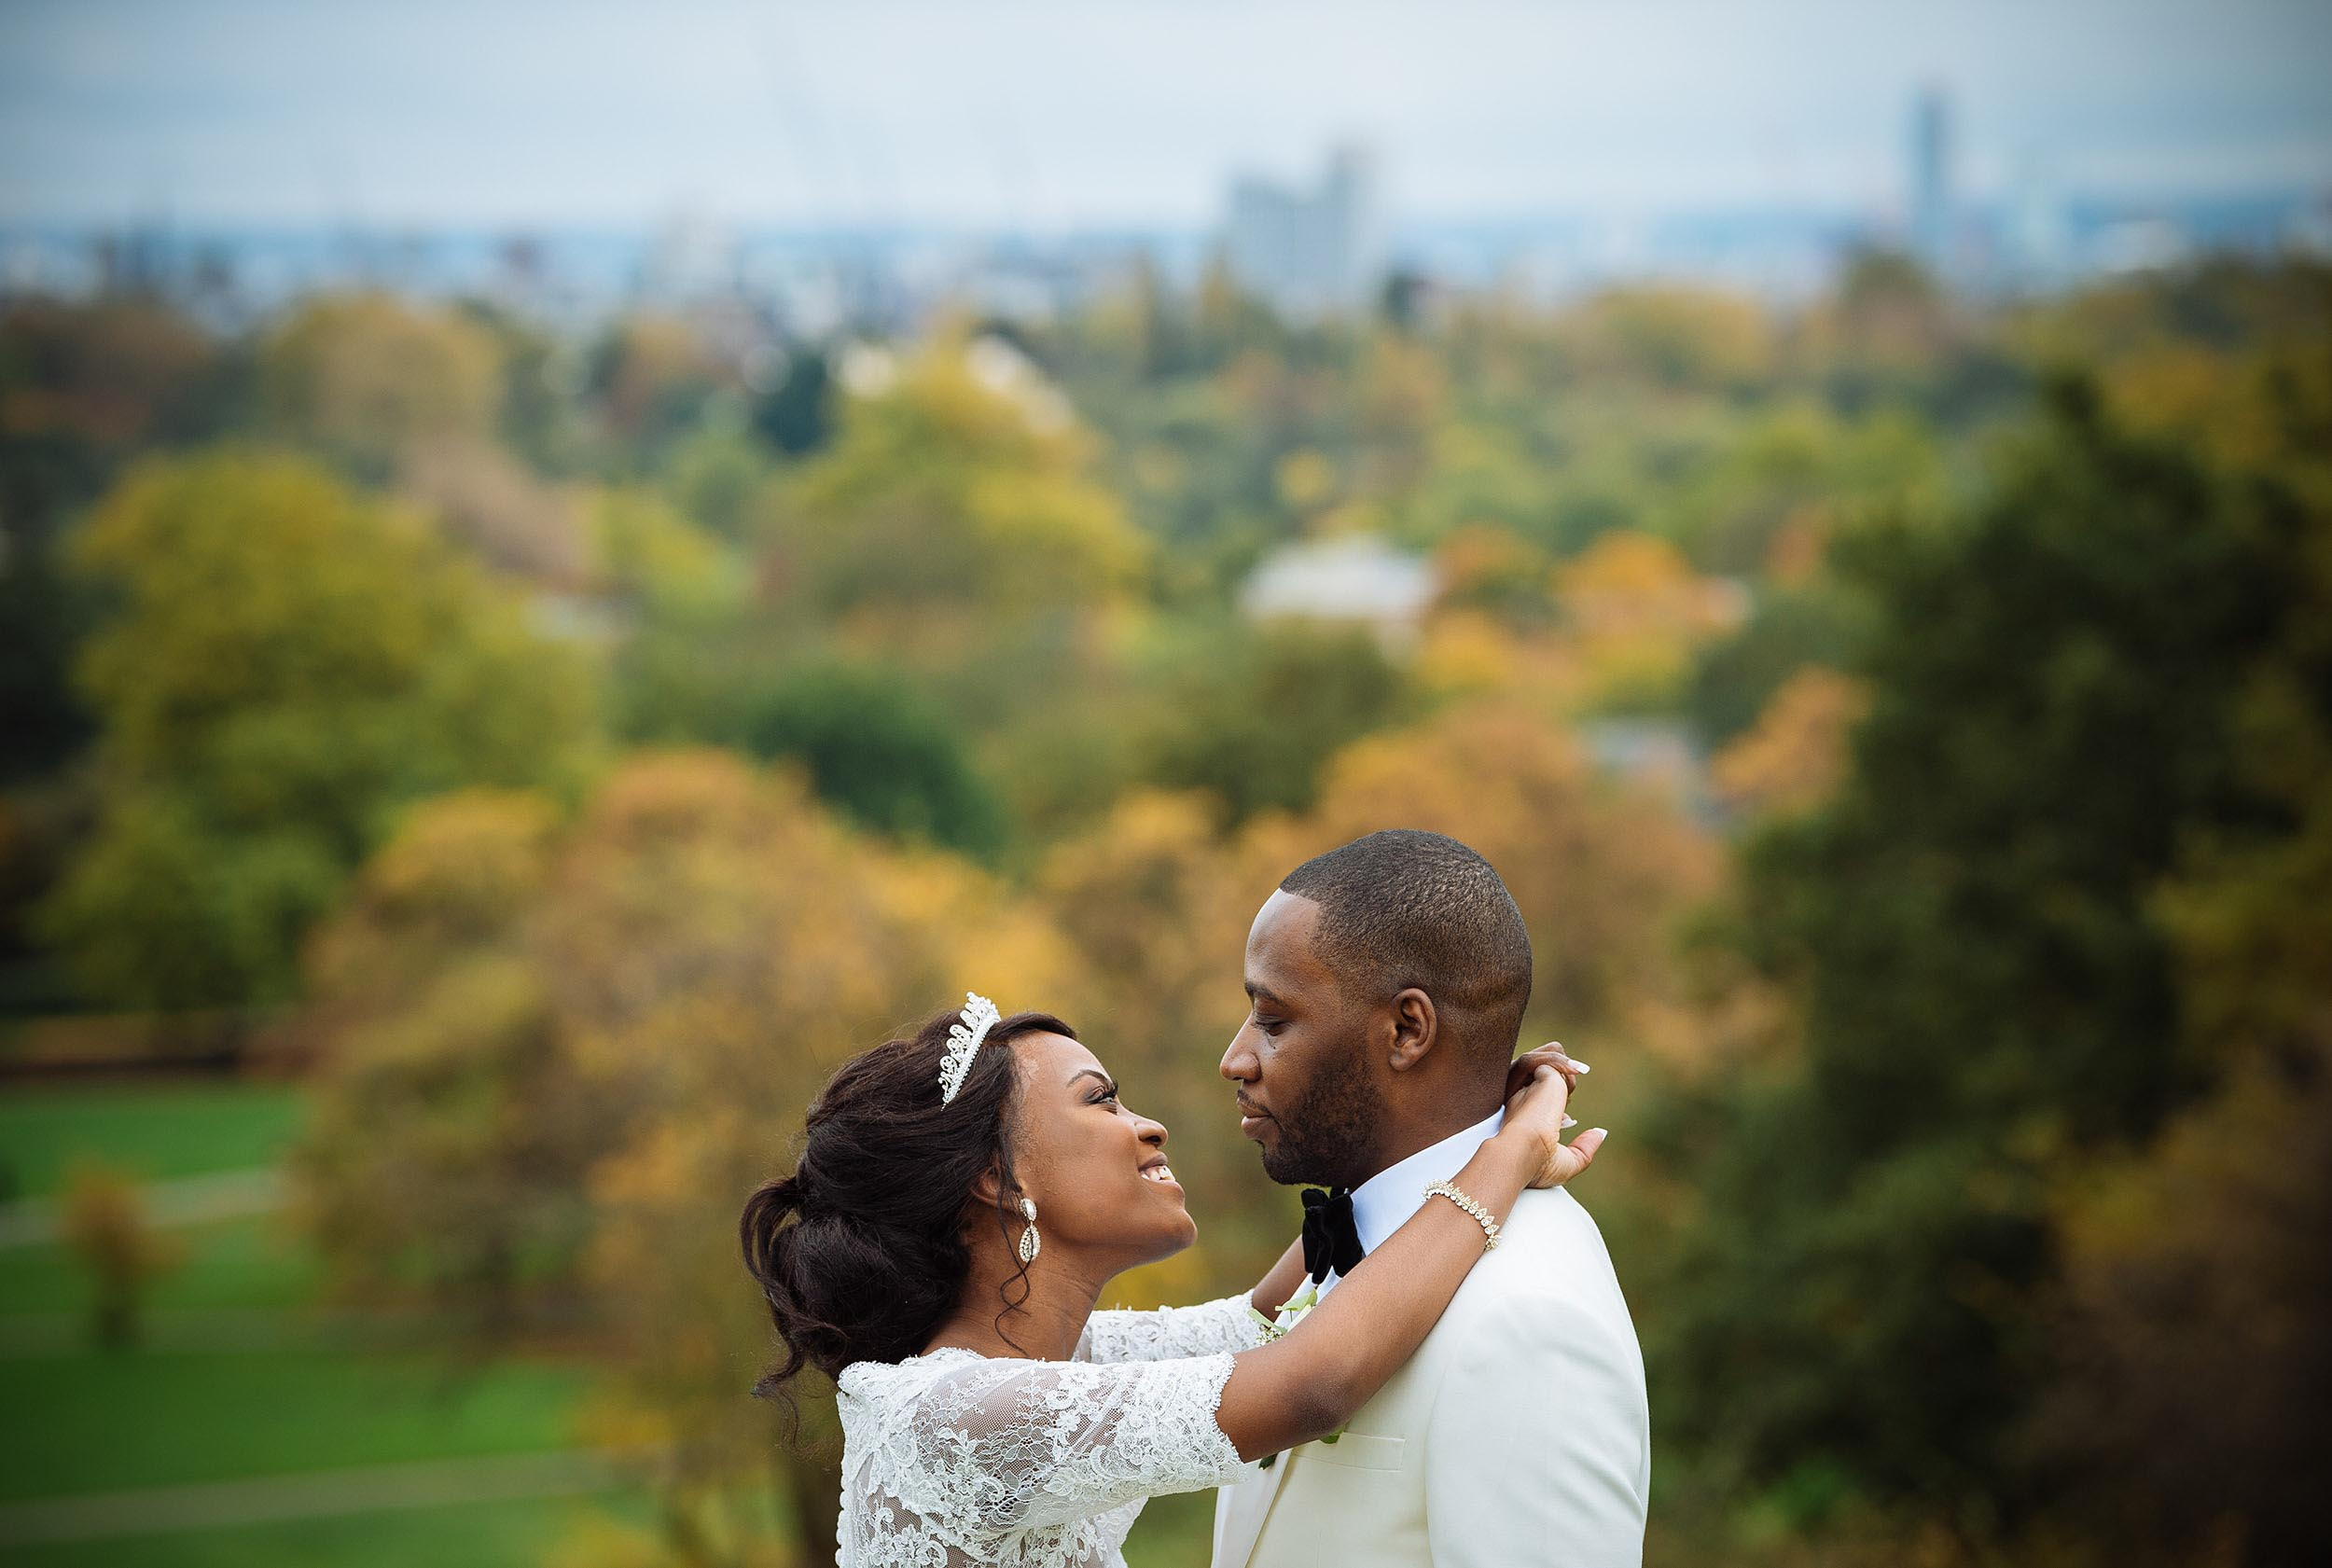 autumn-love-wedding-bride-groom-regents-park-london-photographer